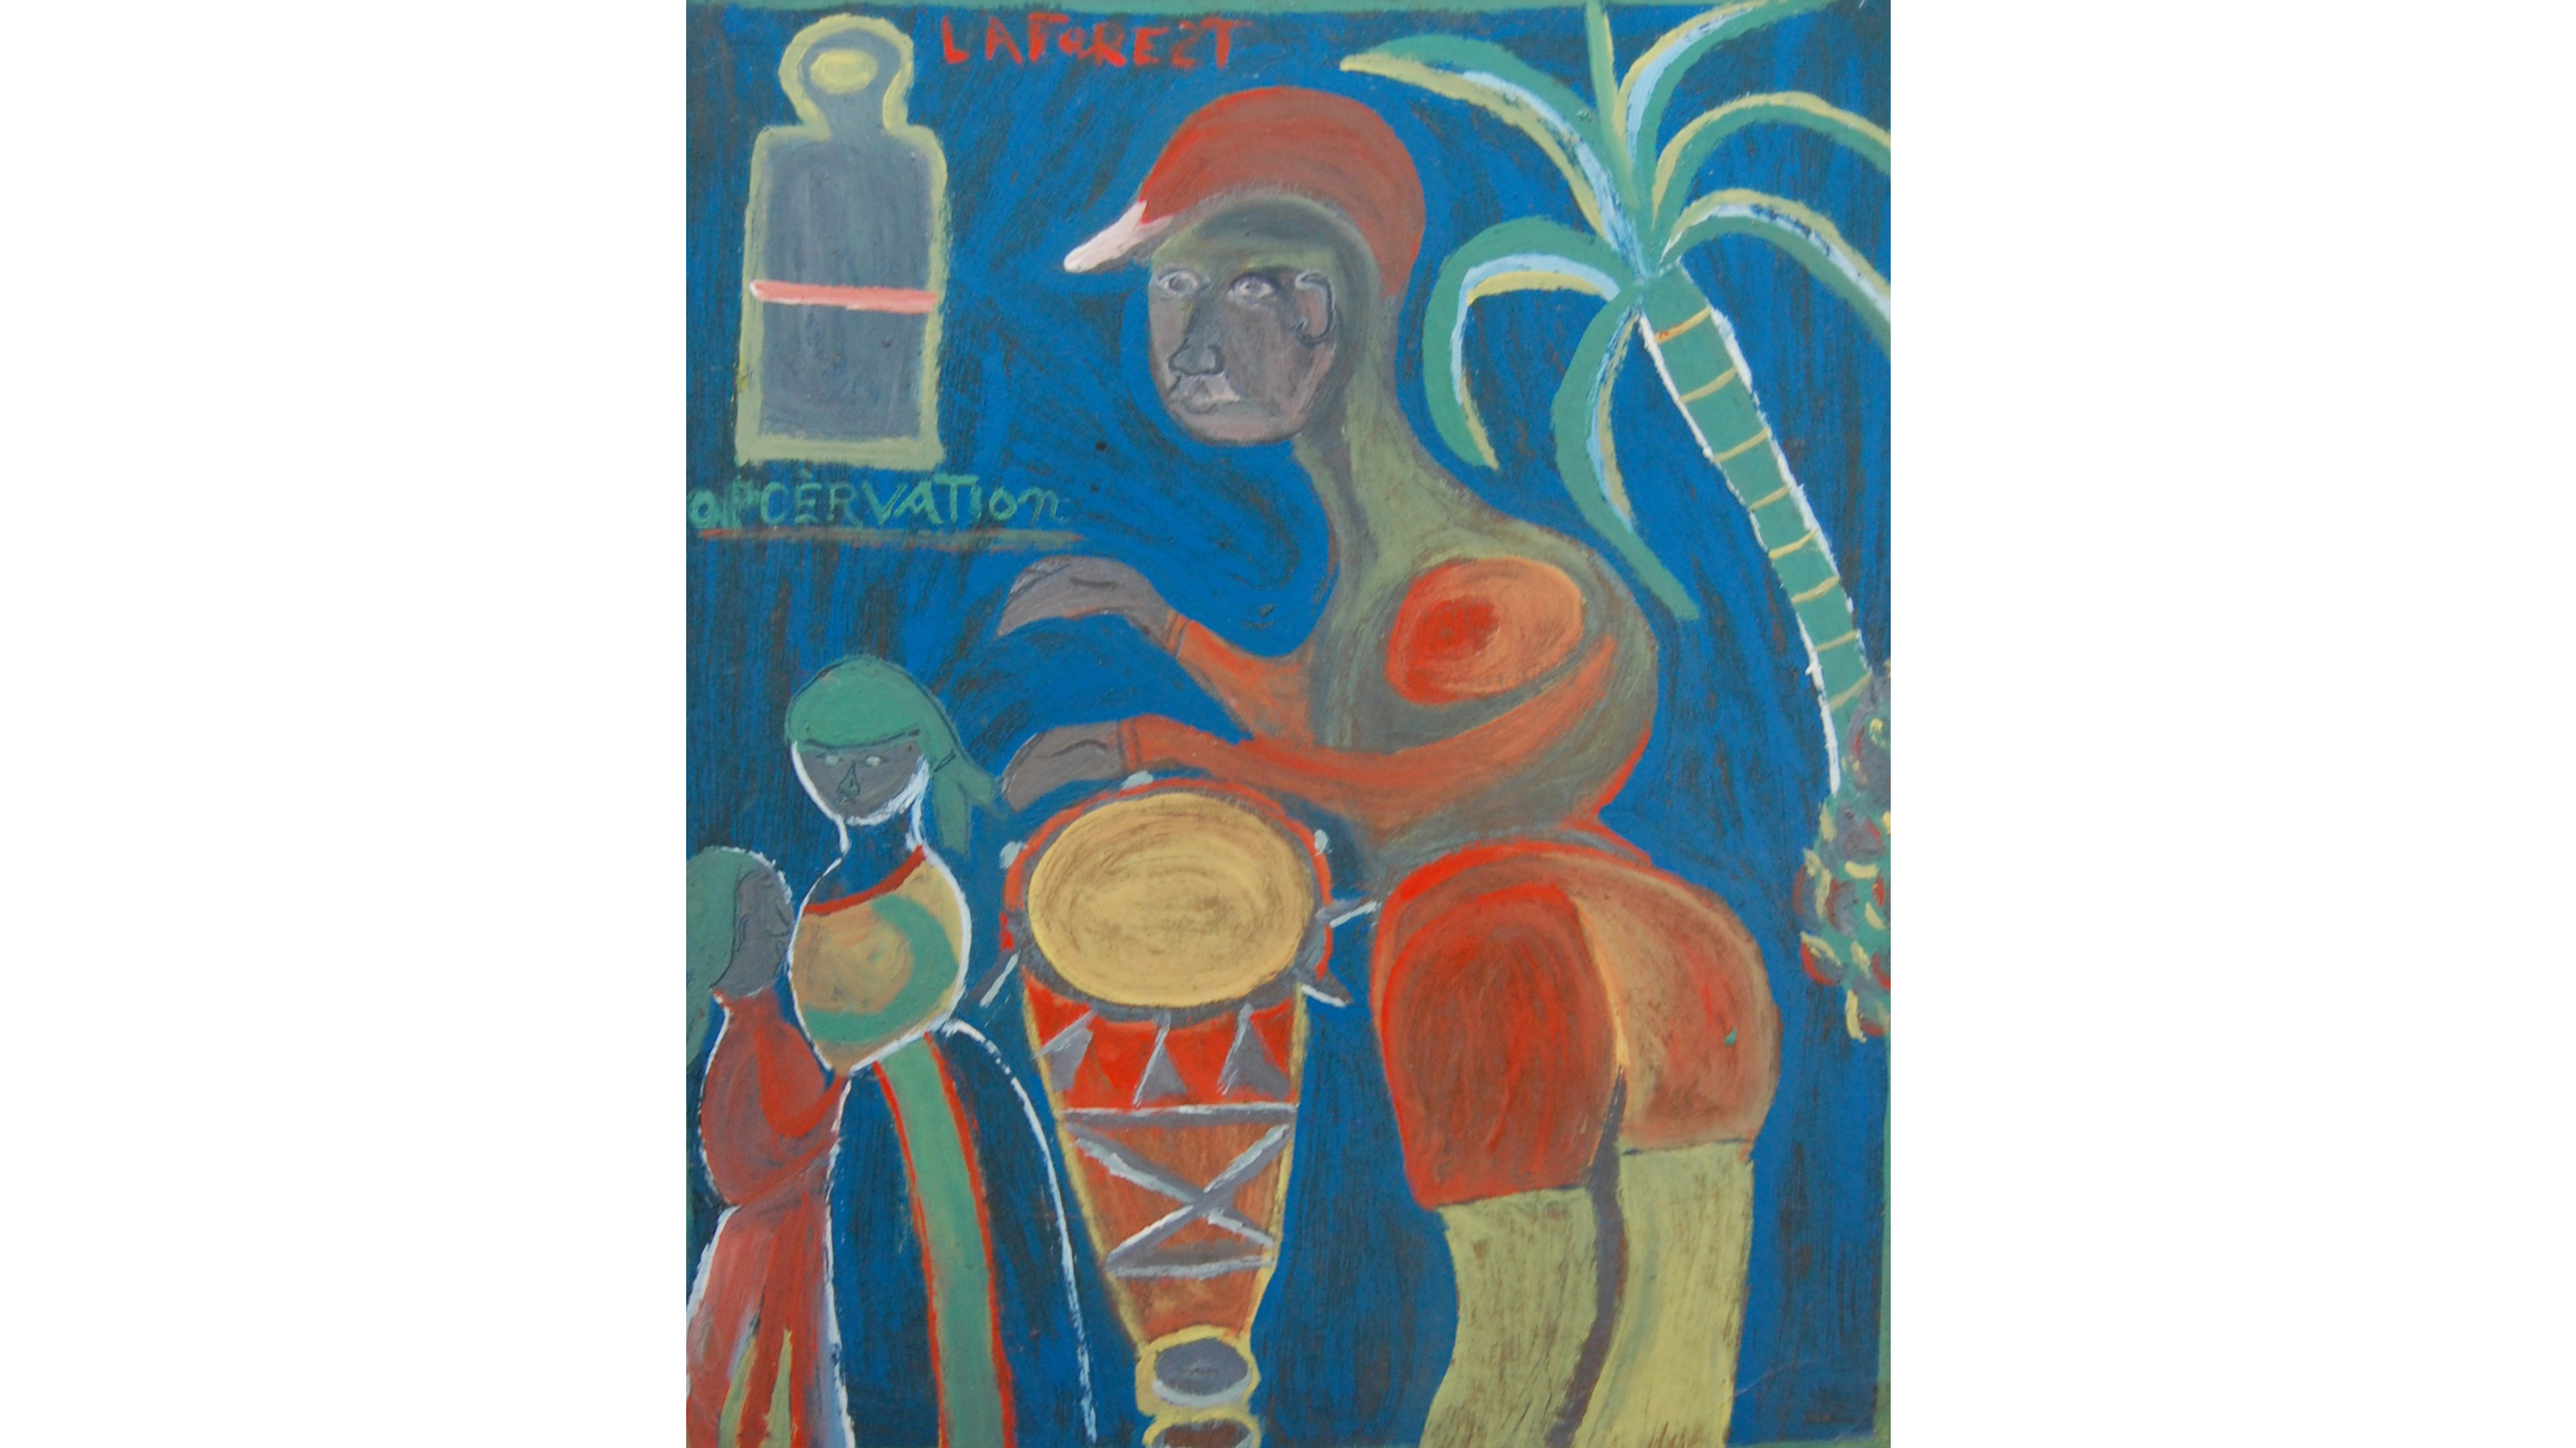 Wesner LaForest, Drumming, 1959. Oil on Masonite, 24 x 20 inches